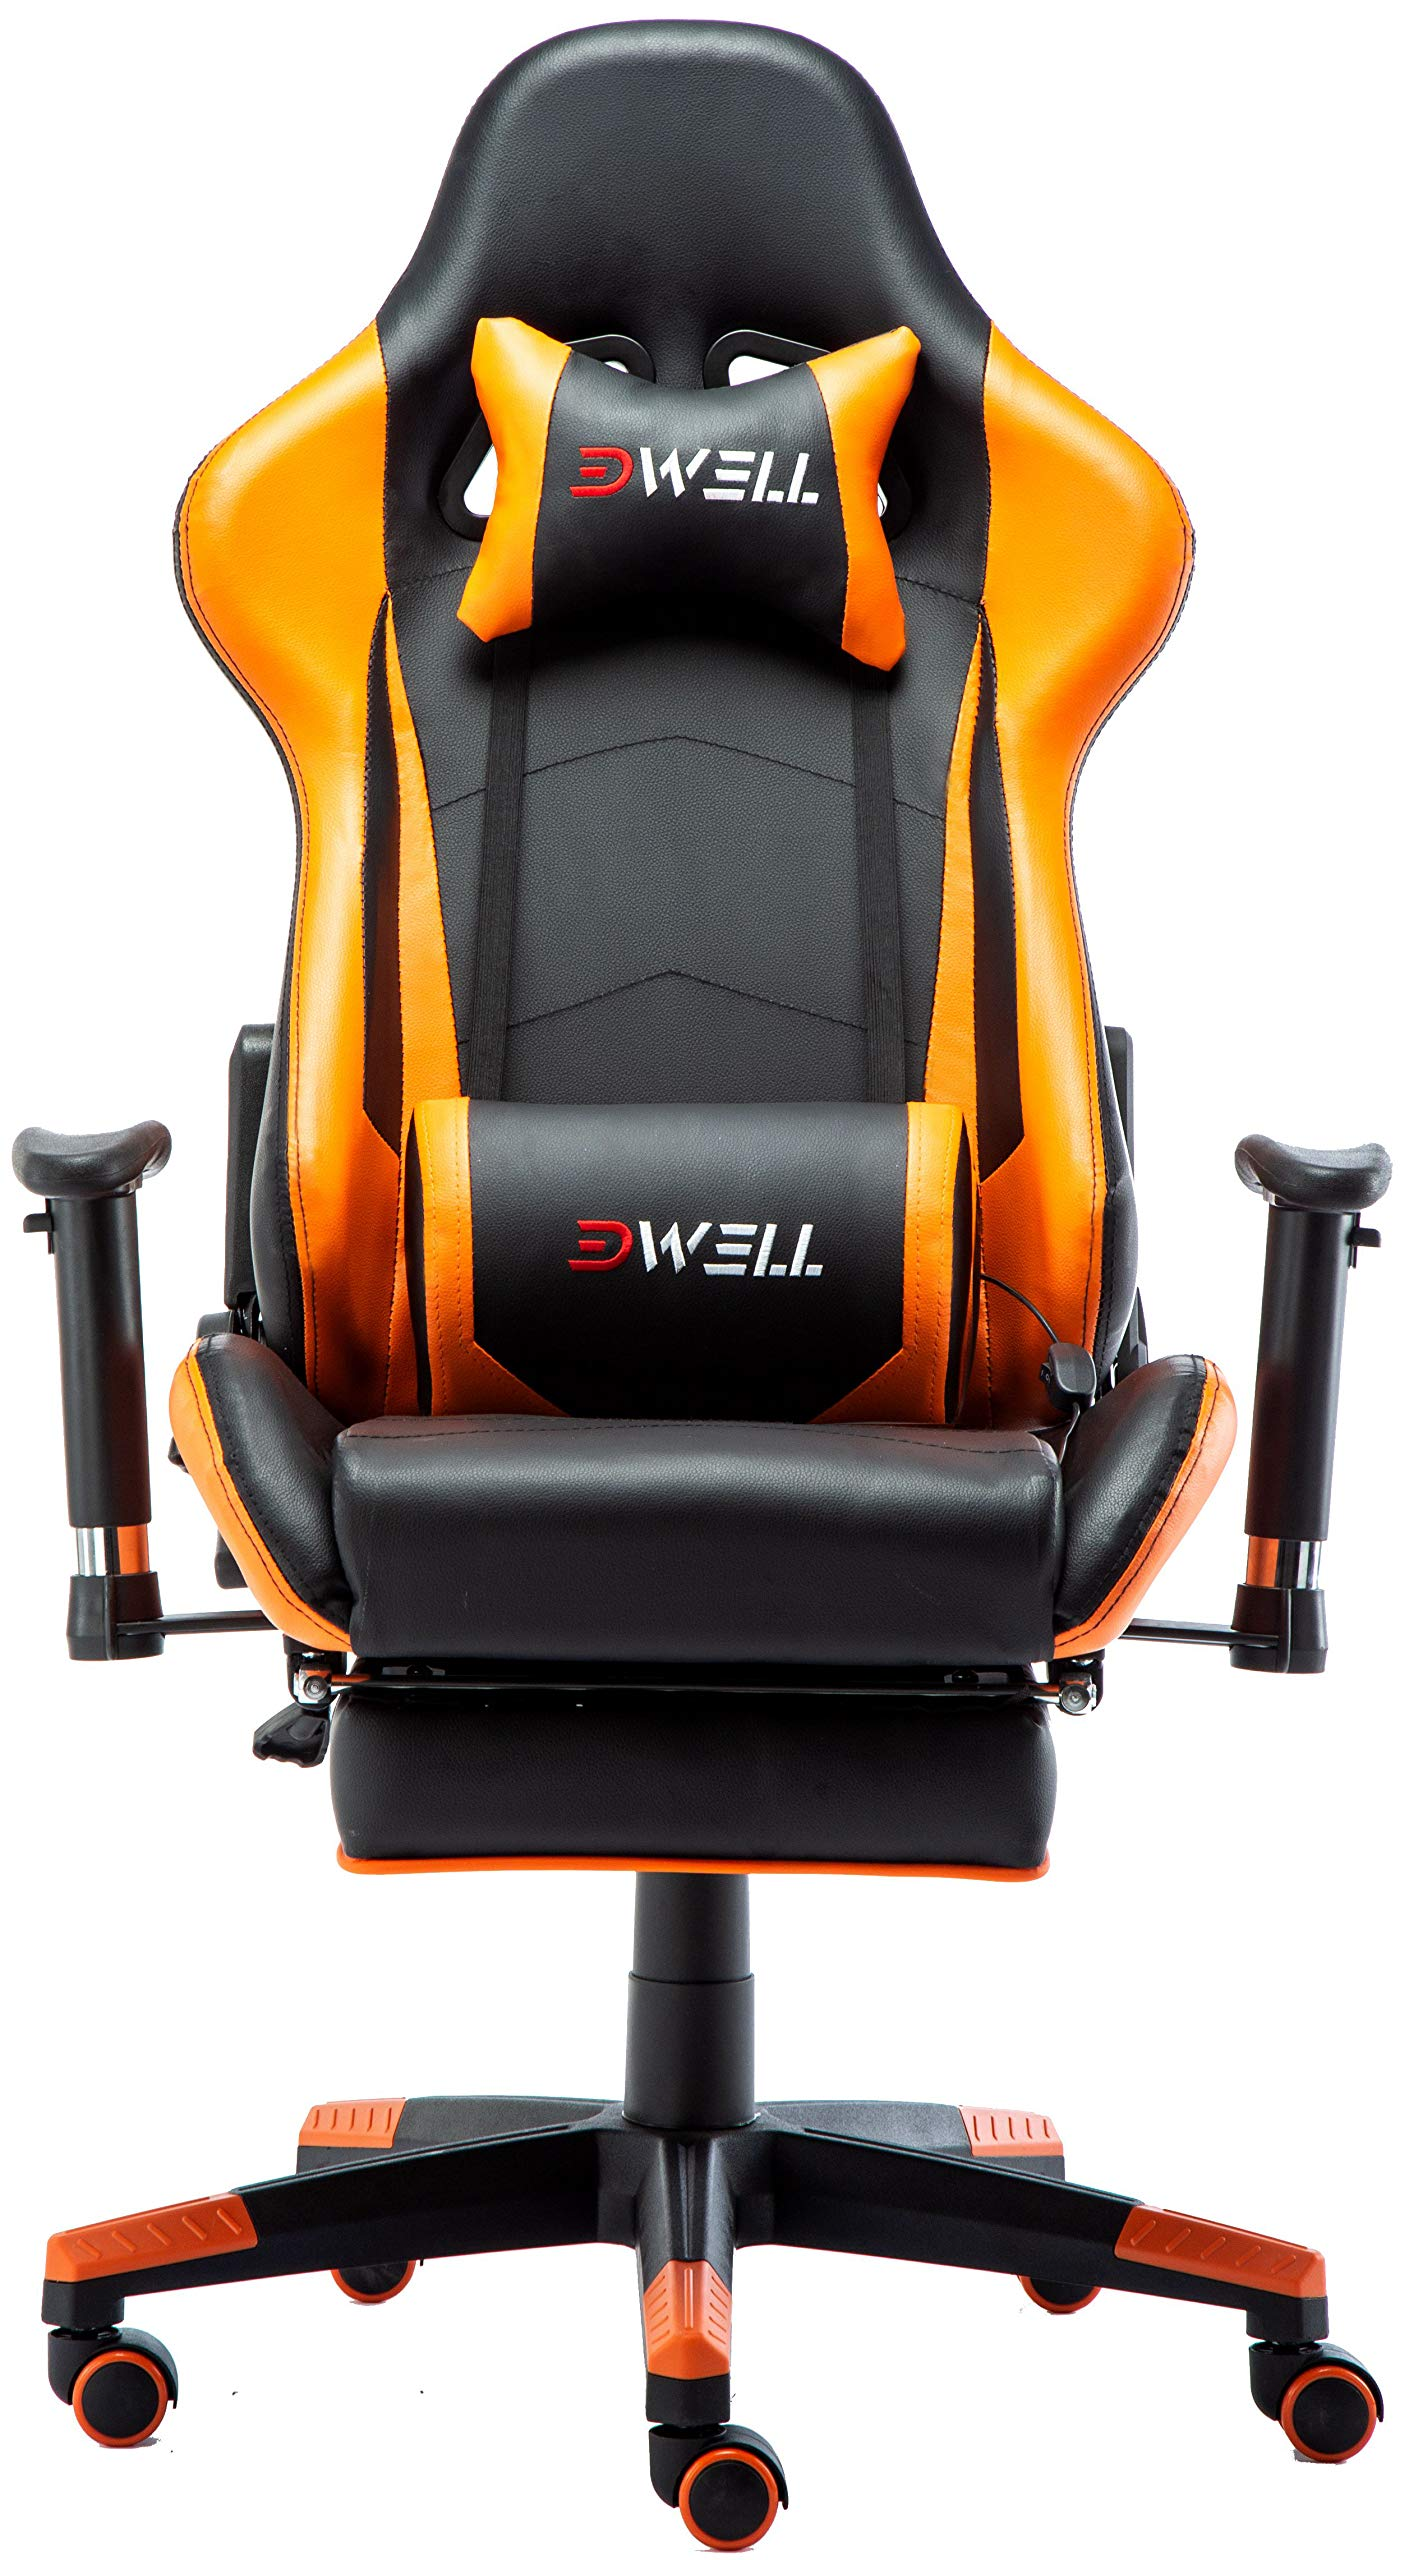 Computer Gaming Chair Office Desk Chair,Large Size Racing Chair High-Back Ergonomic PU Leather Adjustable Esports Desk Chair with Headrest Massage Lumbar Support Retractable Footrest (Orange) by Ansuit